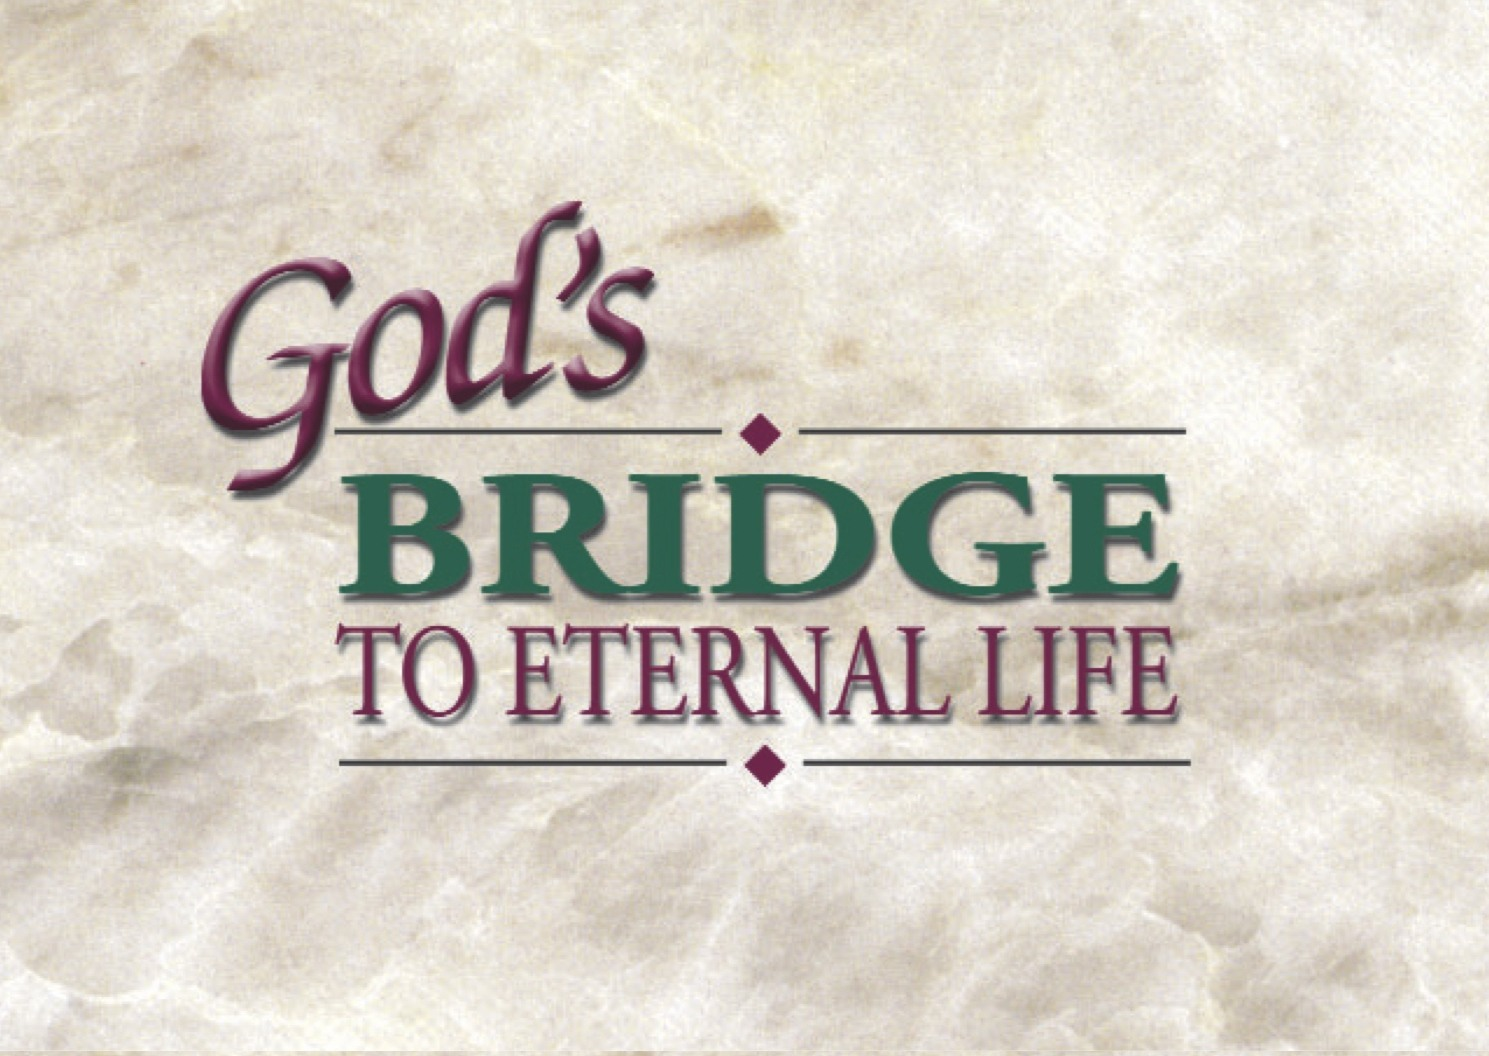 God's Bridge To Eternal Life